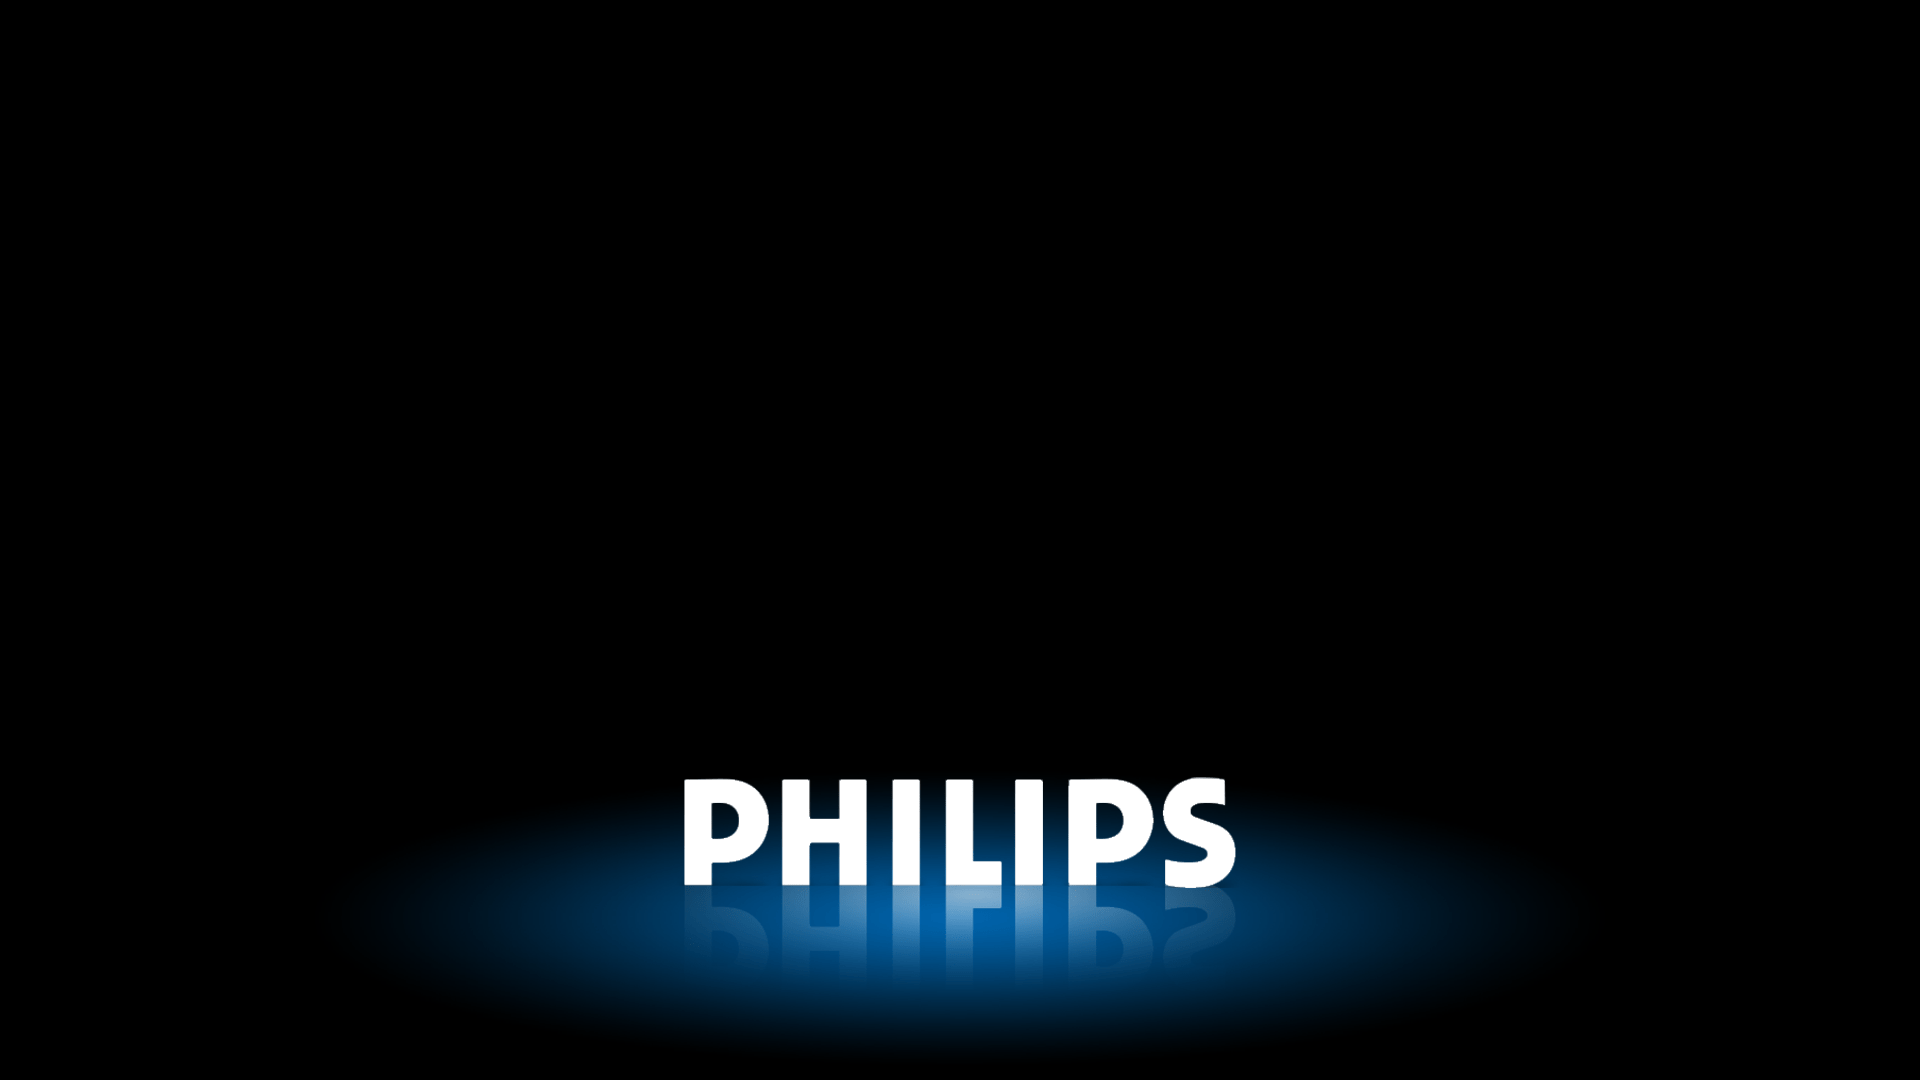 Iphone X Full Wallpaper Size Philips Wallpaper Full Hd Pictures